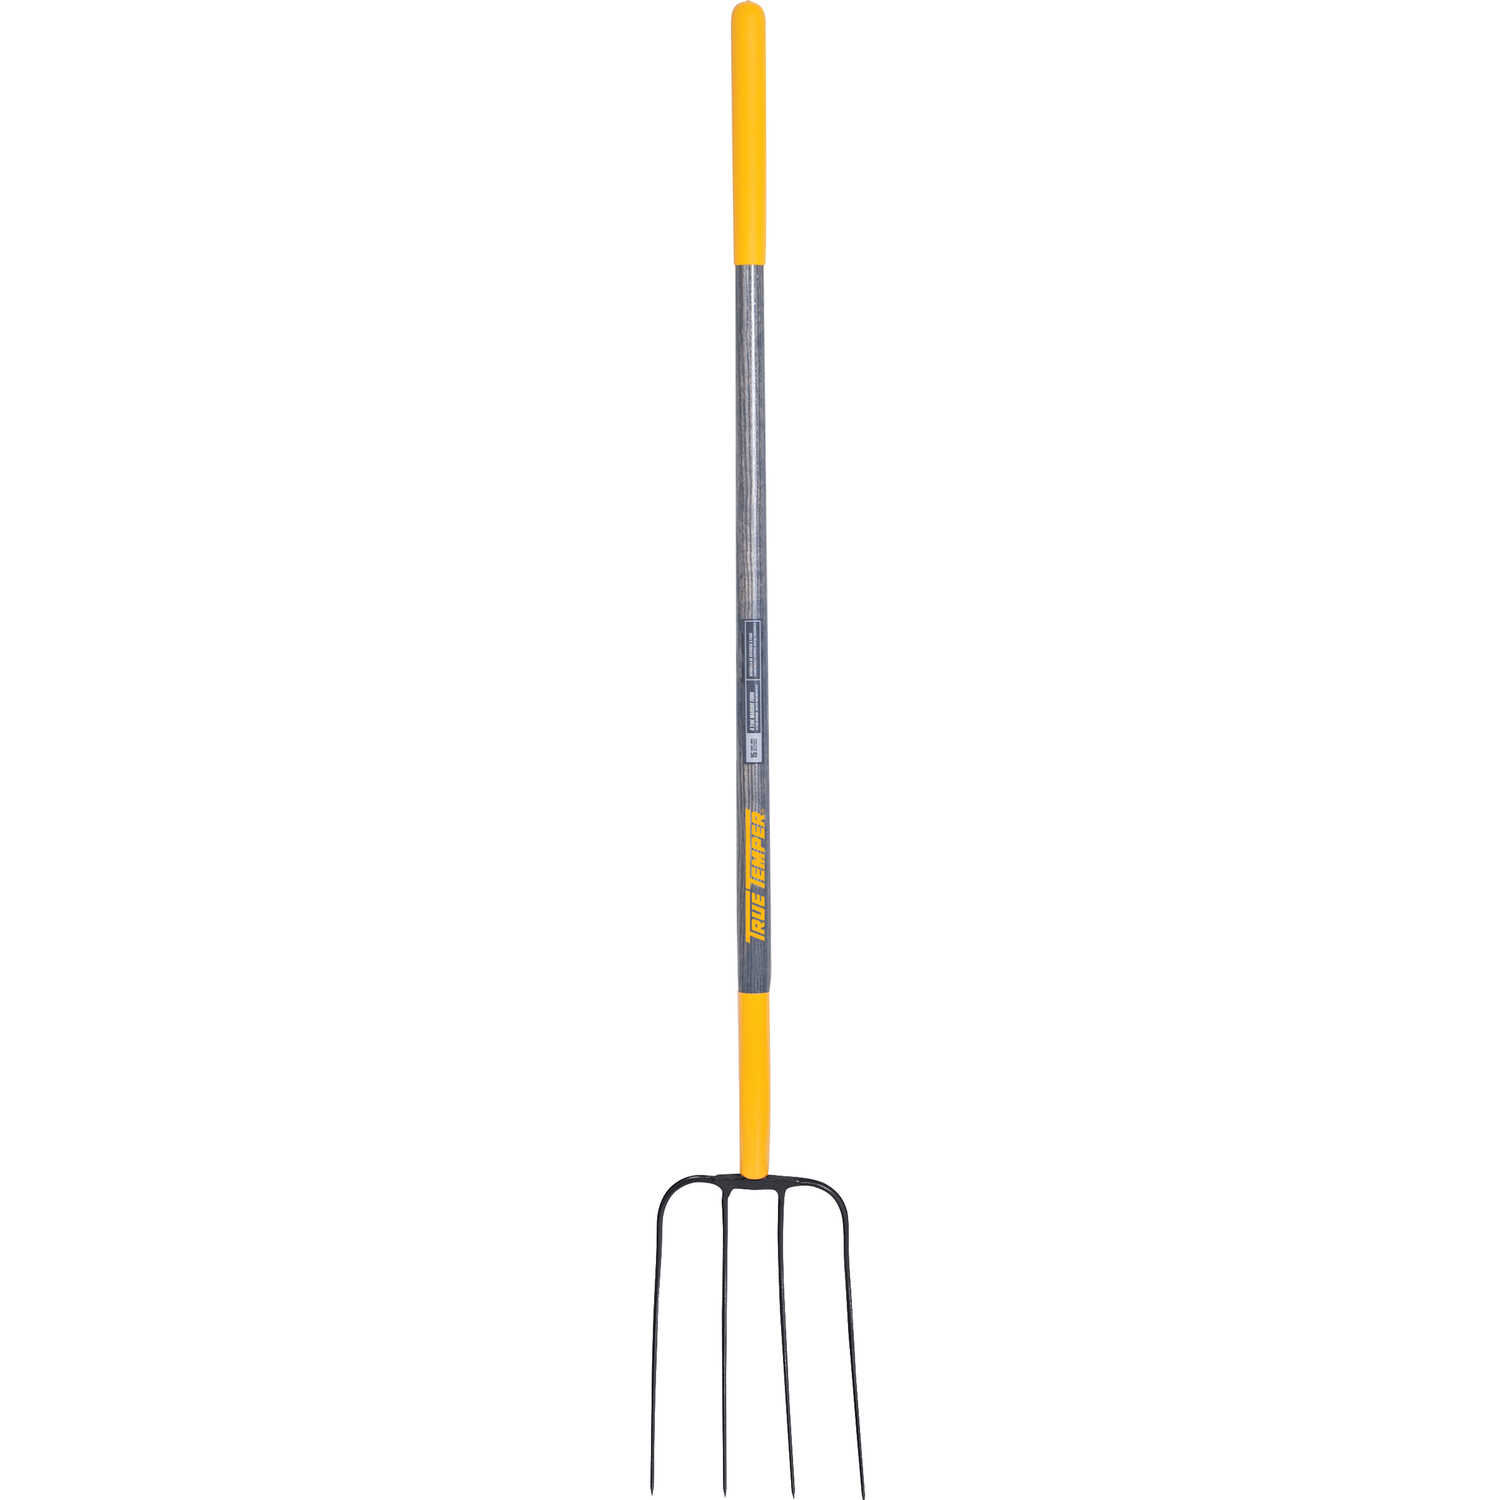 Ames  True Temper  59.5 in. L x 9 in. W Steel  Garden  Rake